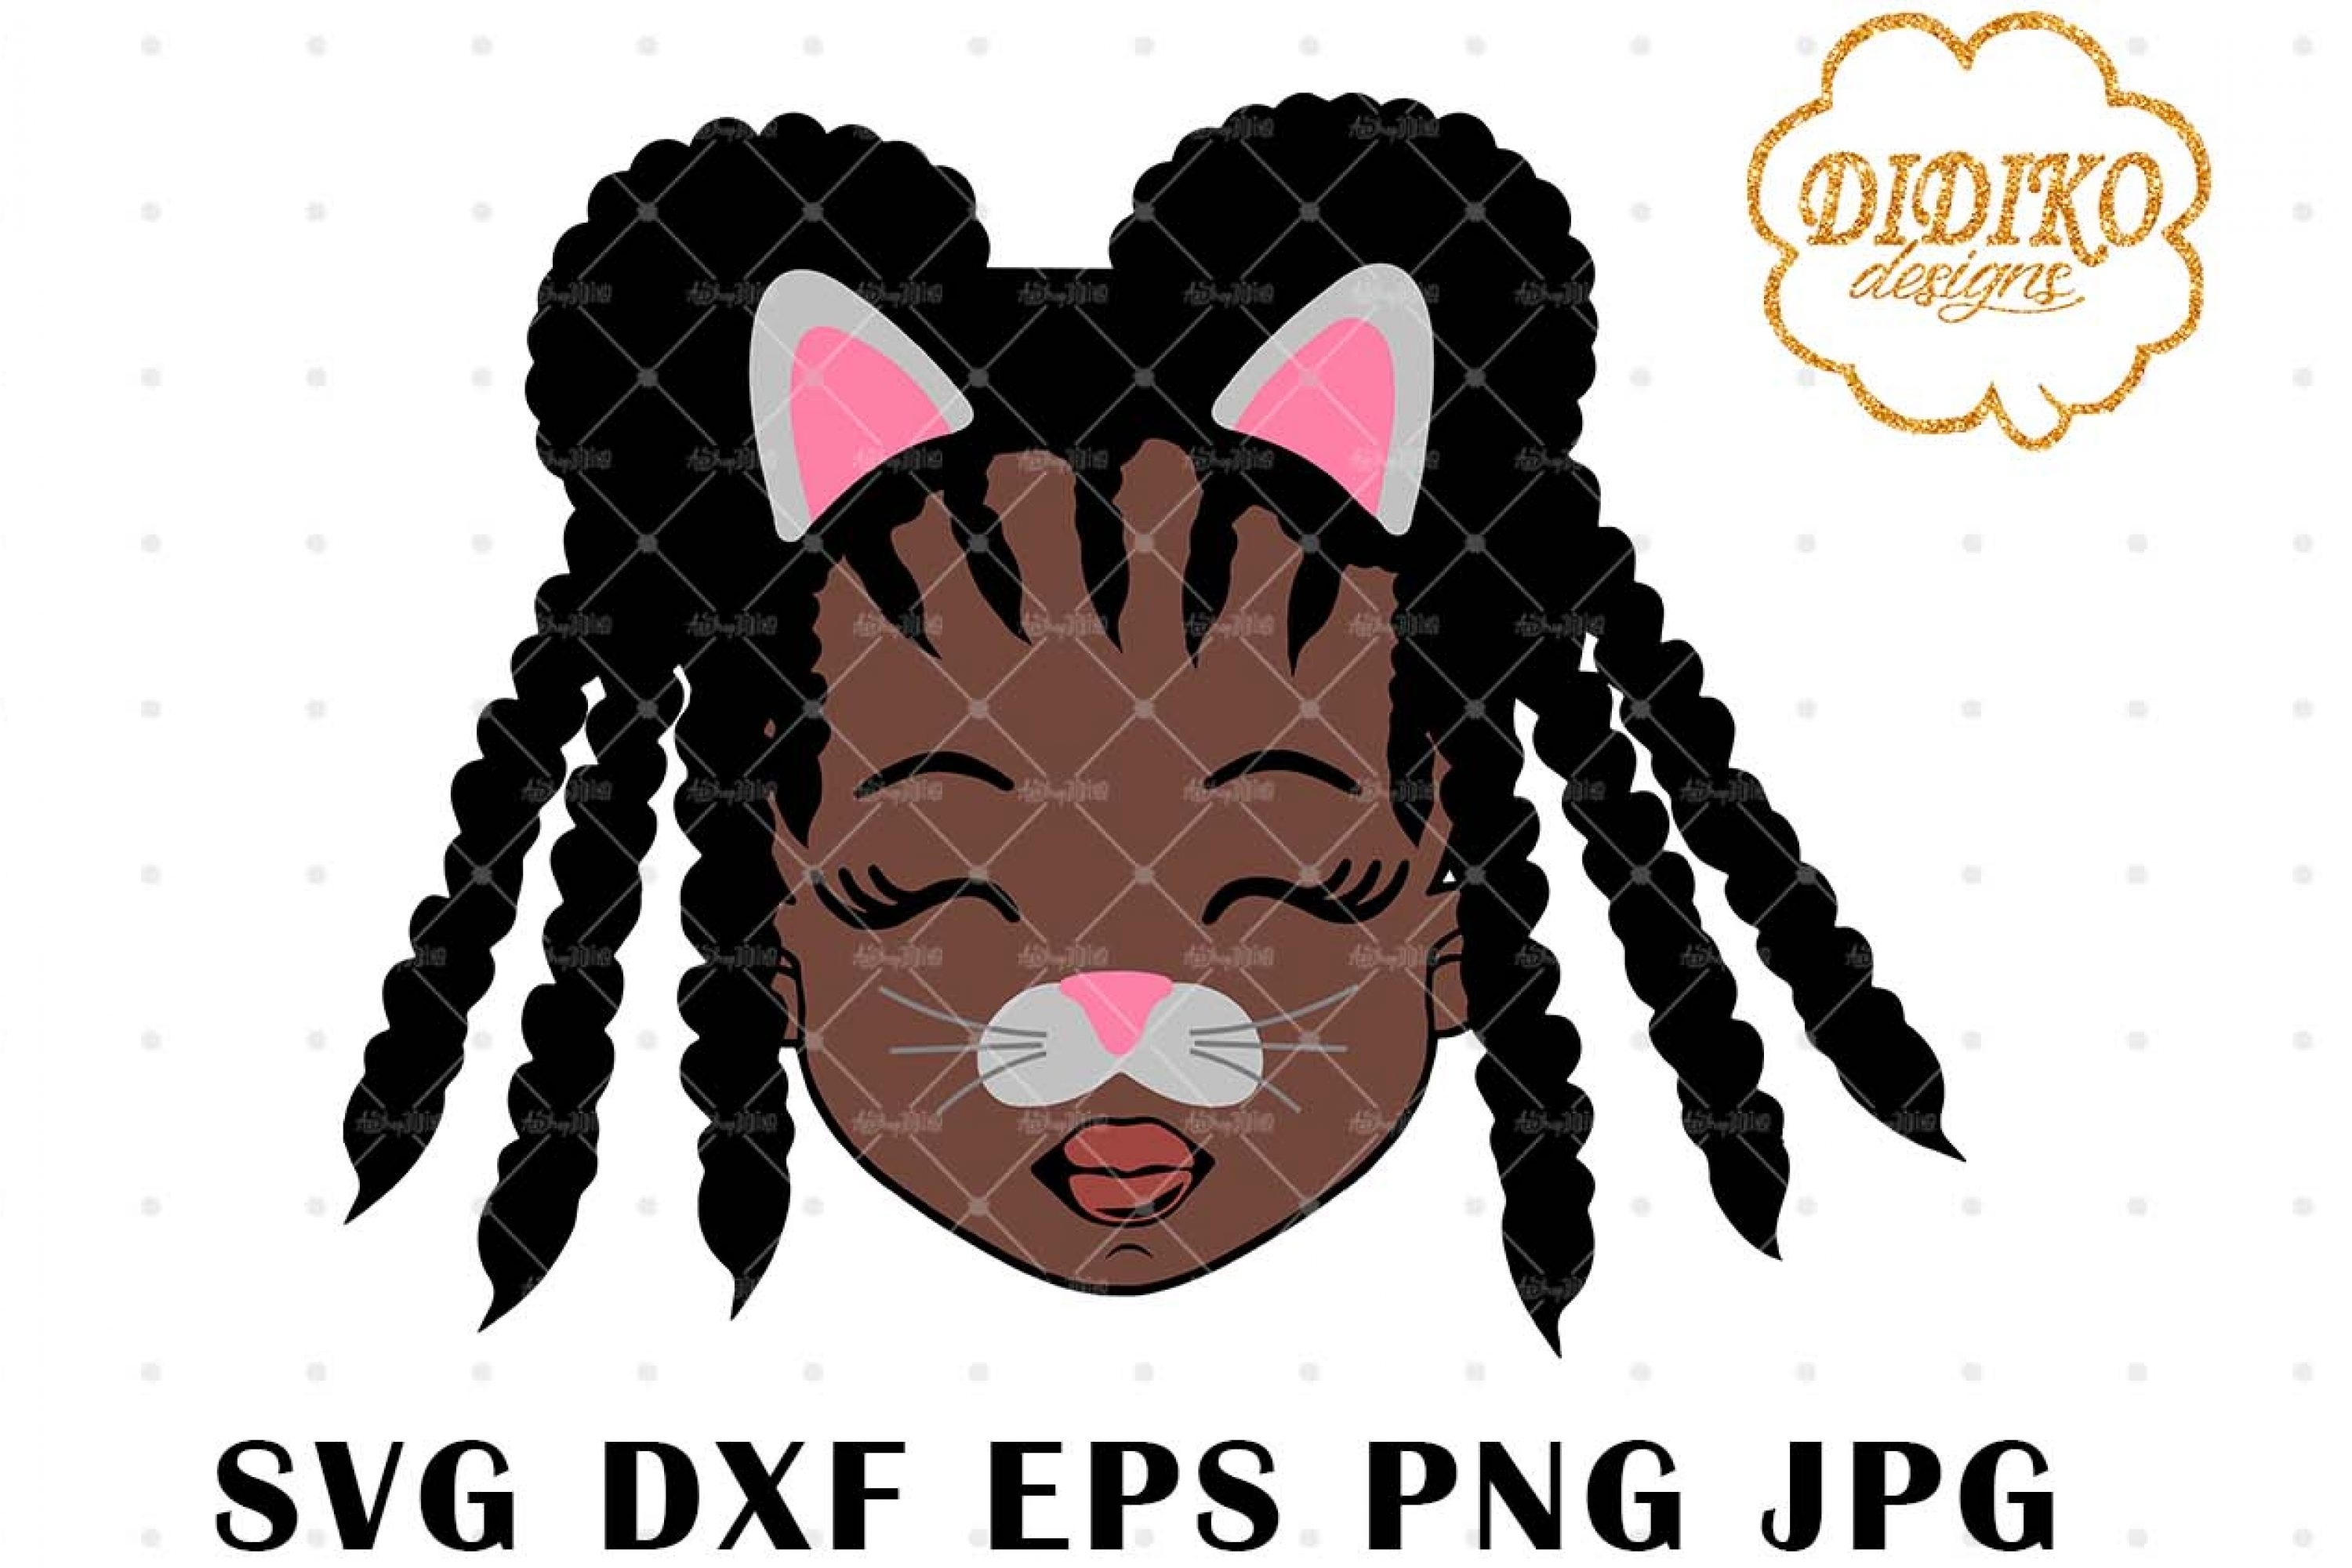 Cat Face Girl SVG, Halloween Black girl Svg, Afro braids